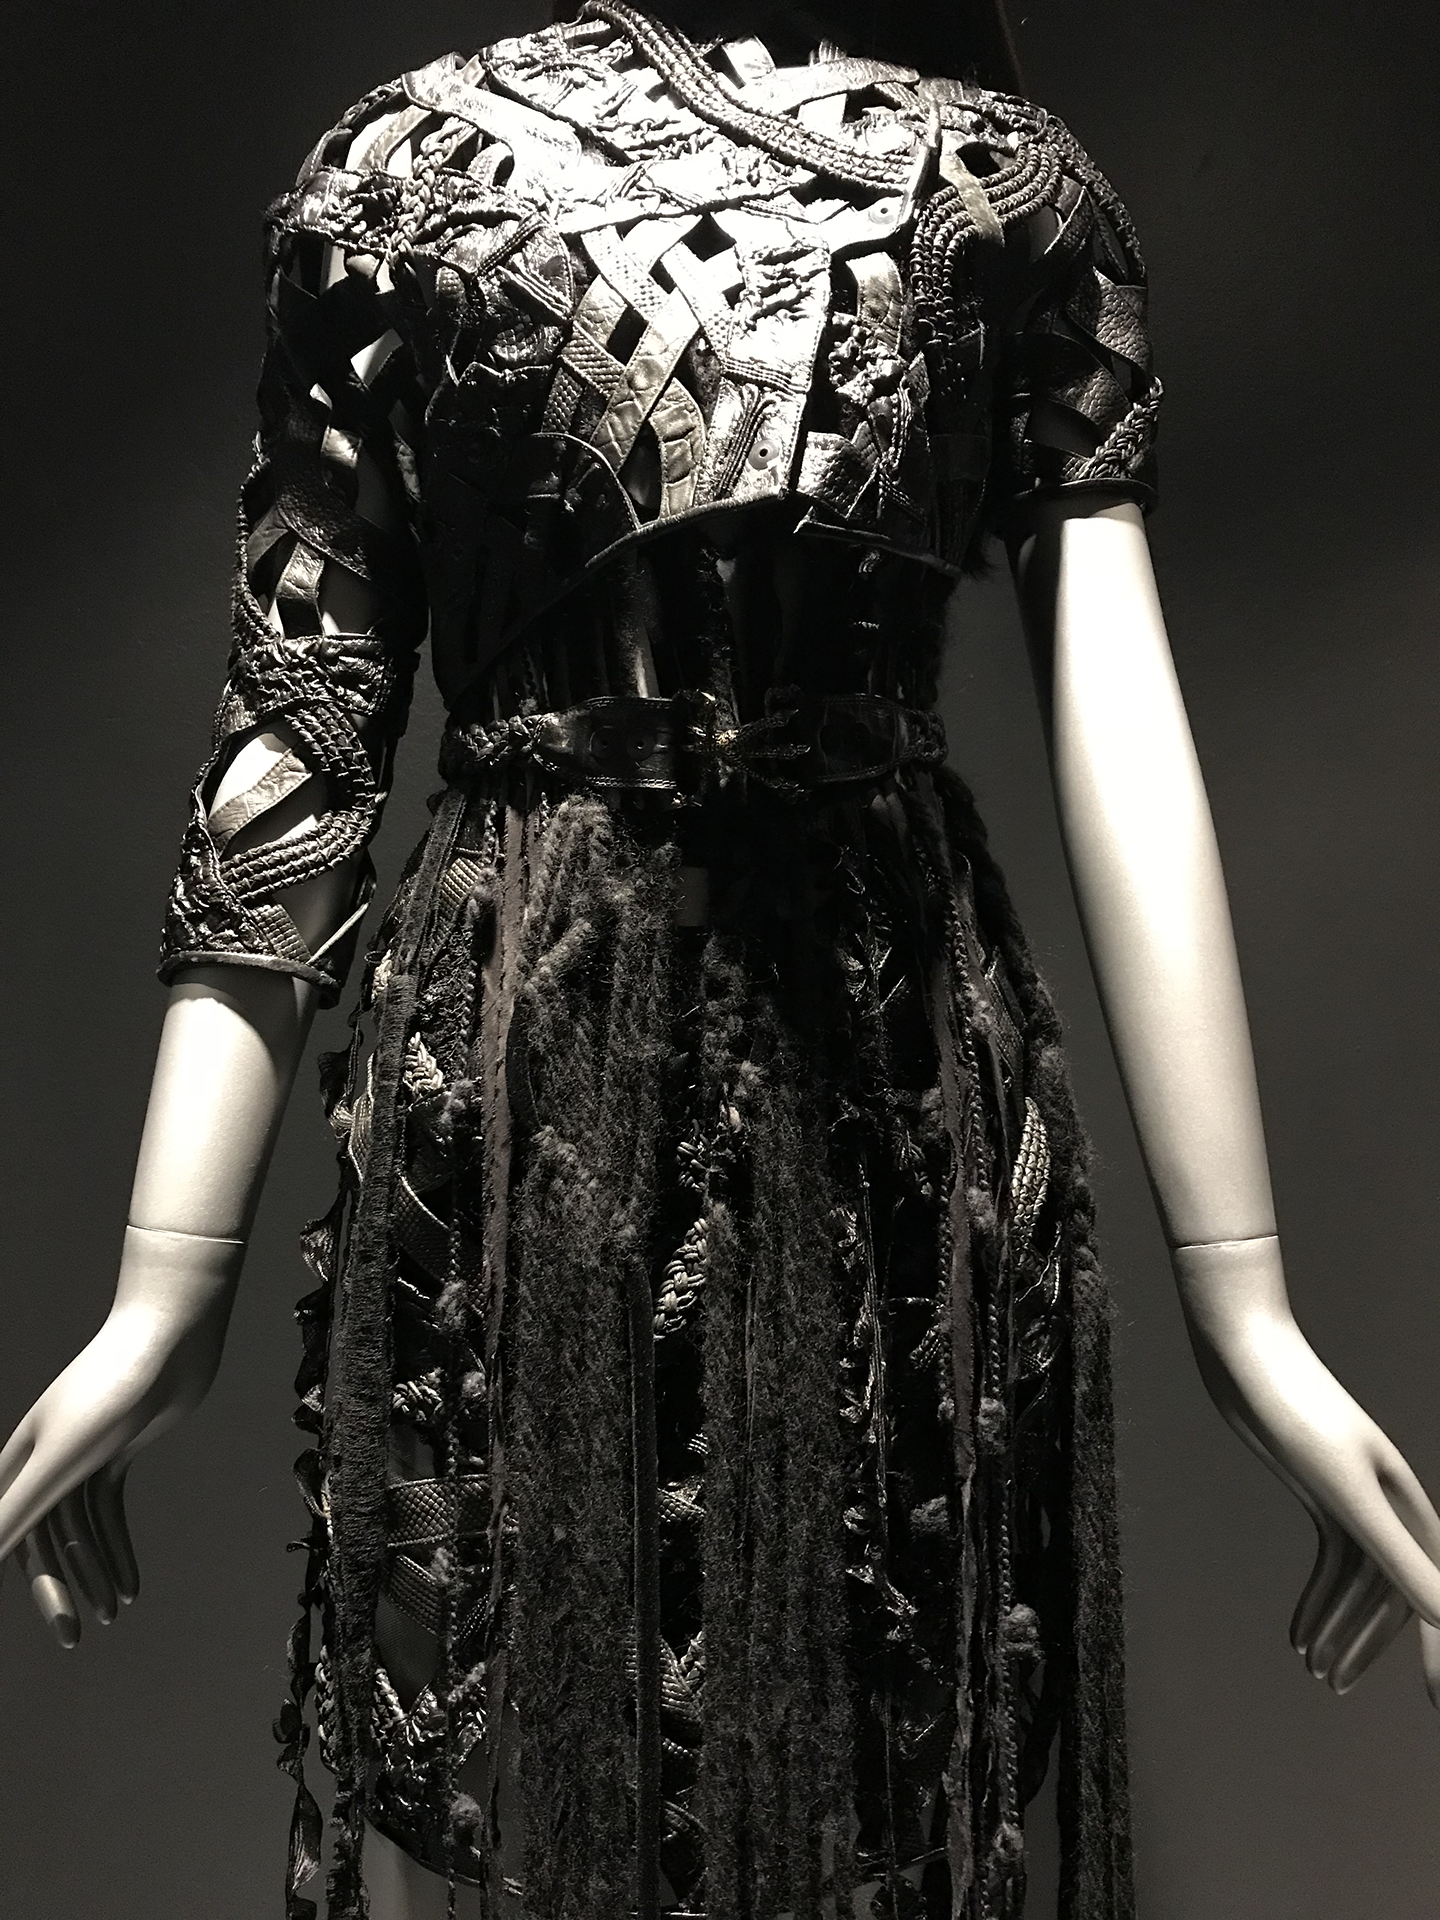 A close up of one of the black dresses, knee length, made of a leather and wool skirt, belt, and a leather top that is overlaid in a variety of patterns.